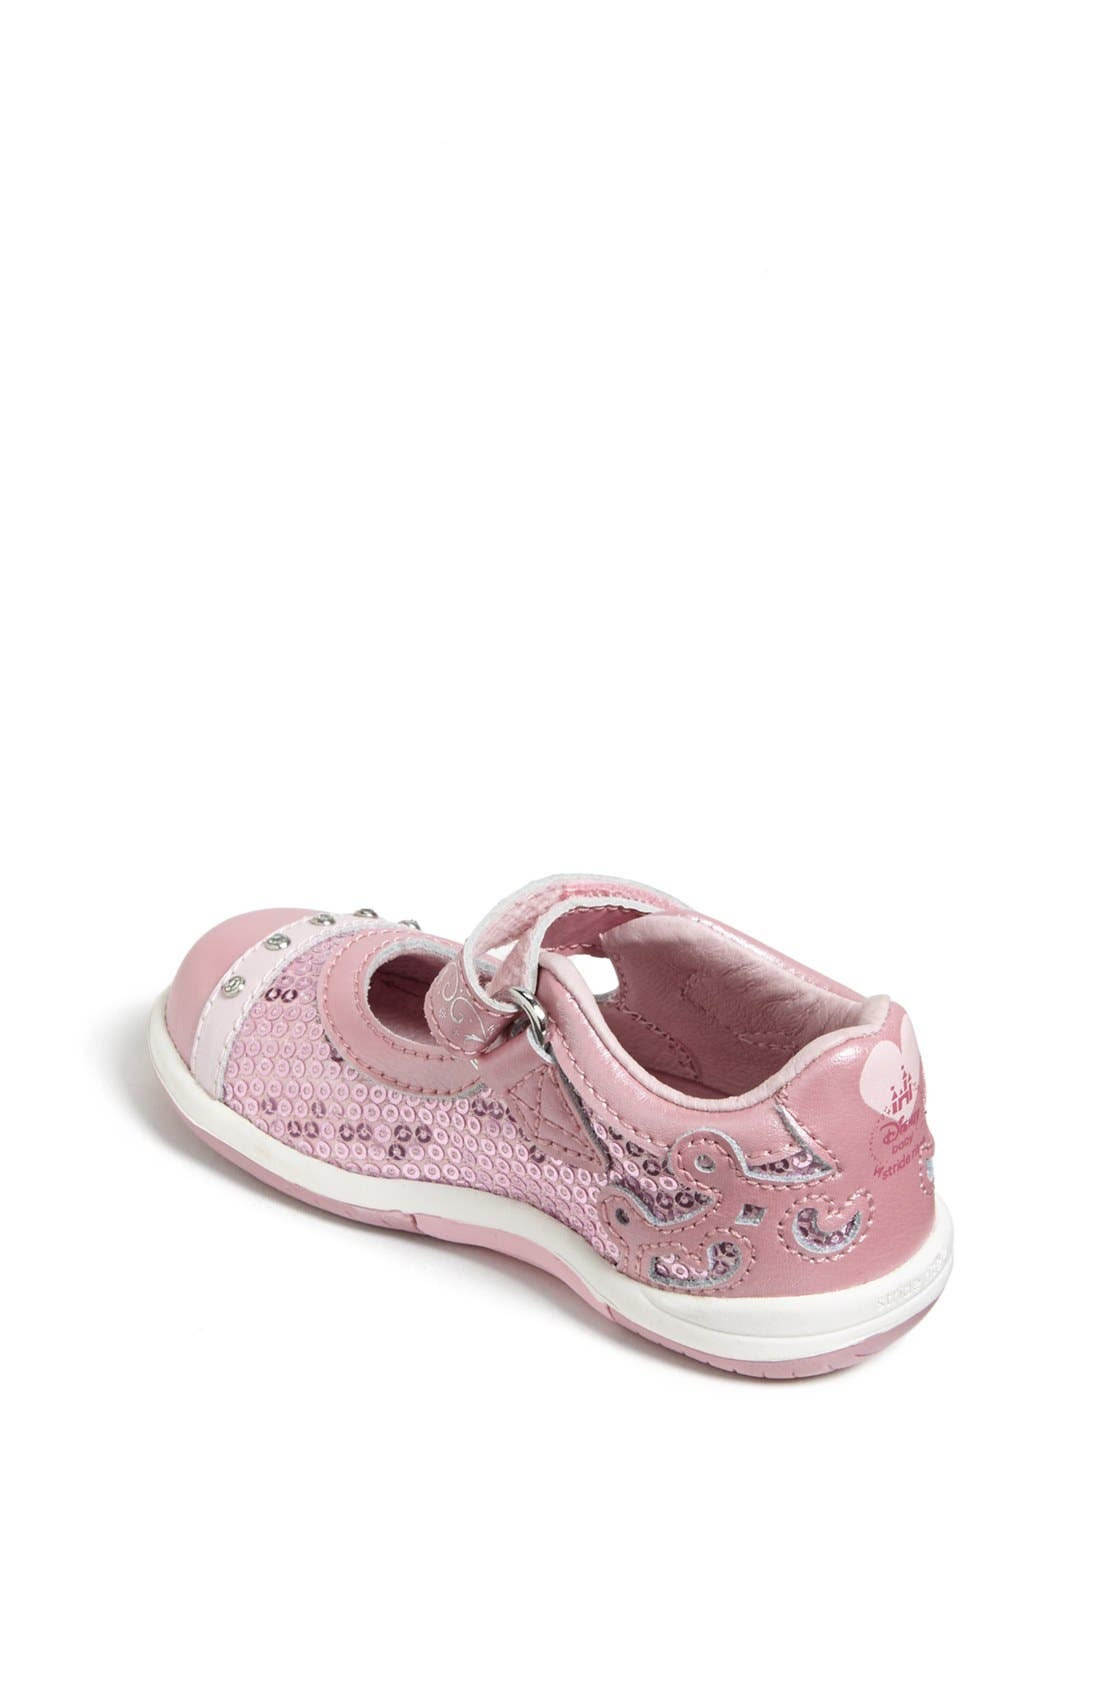 STRIDE RITE,                             'SRT Aurora' Mary Jane Sneaker,                             Alternate thumbnail 2, color,                             650